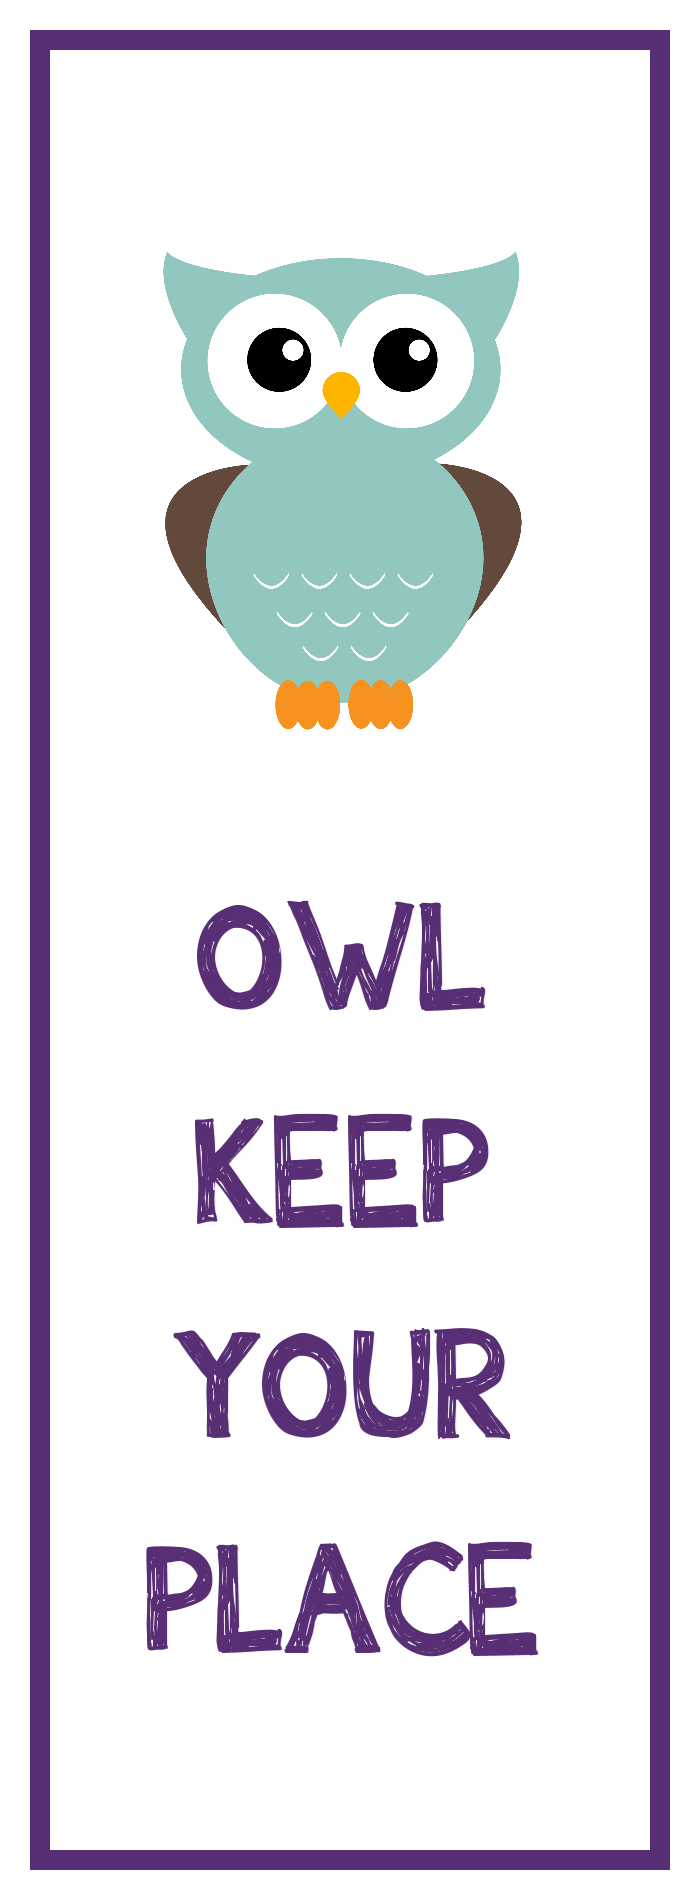 owl bookmark printable - Pictures To Print For Free